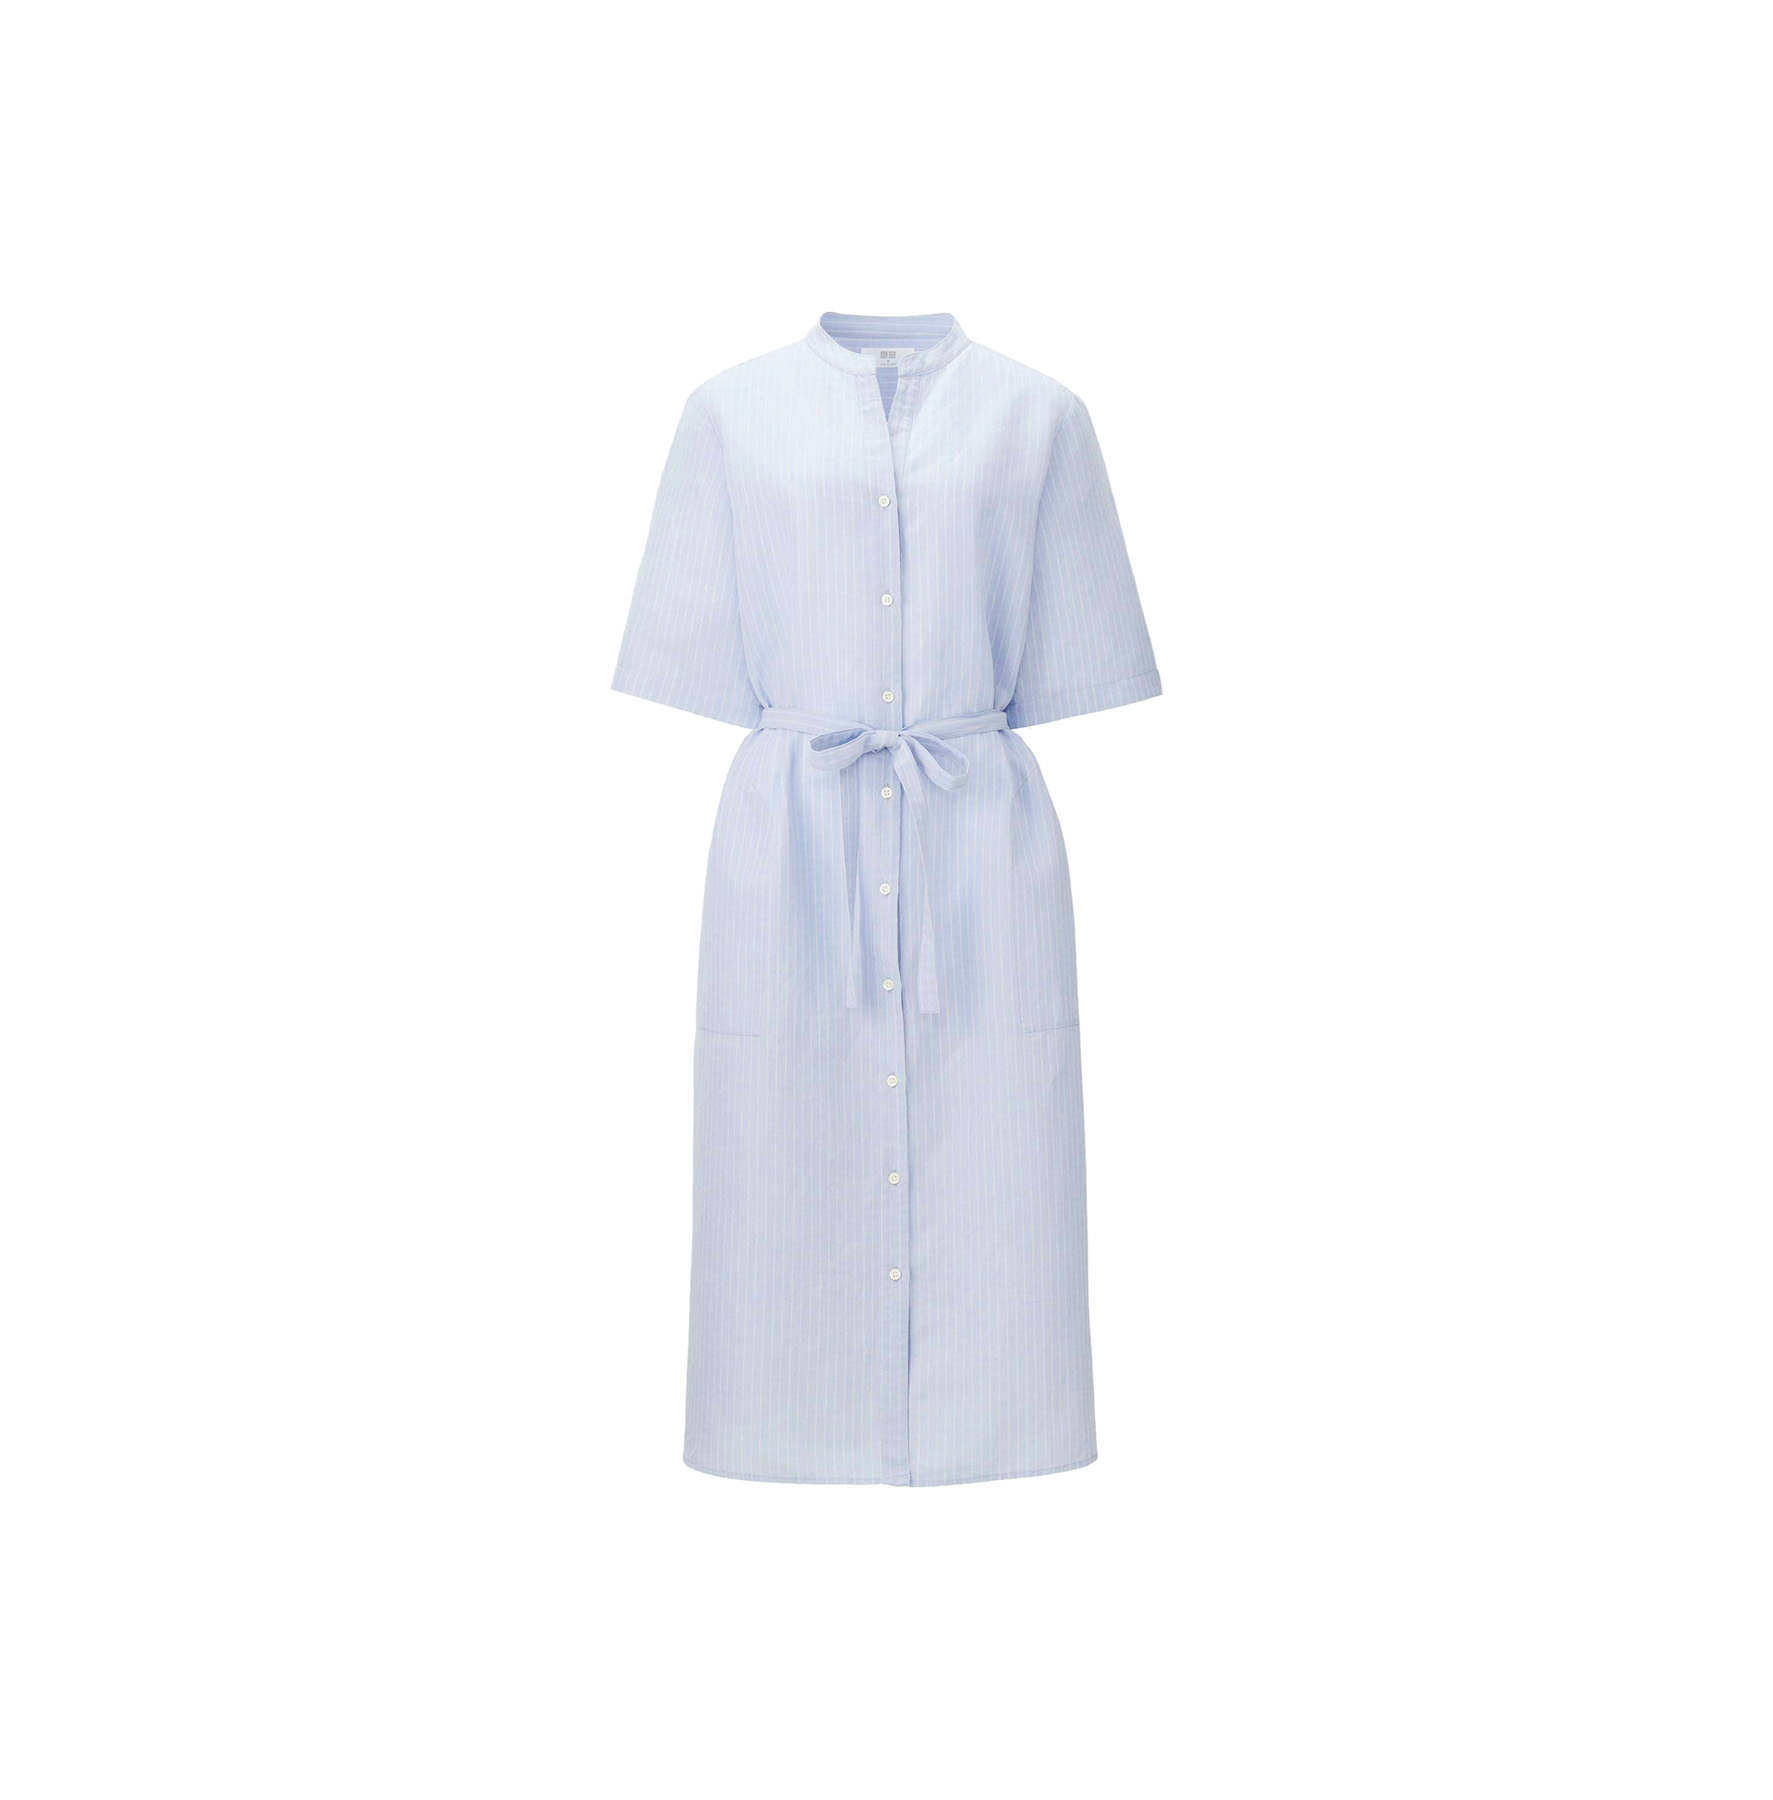 Uniqlo Linen Cotton Striped Shirt Dress